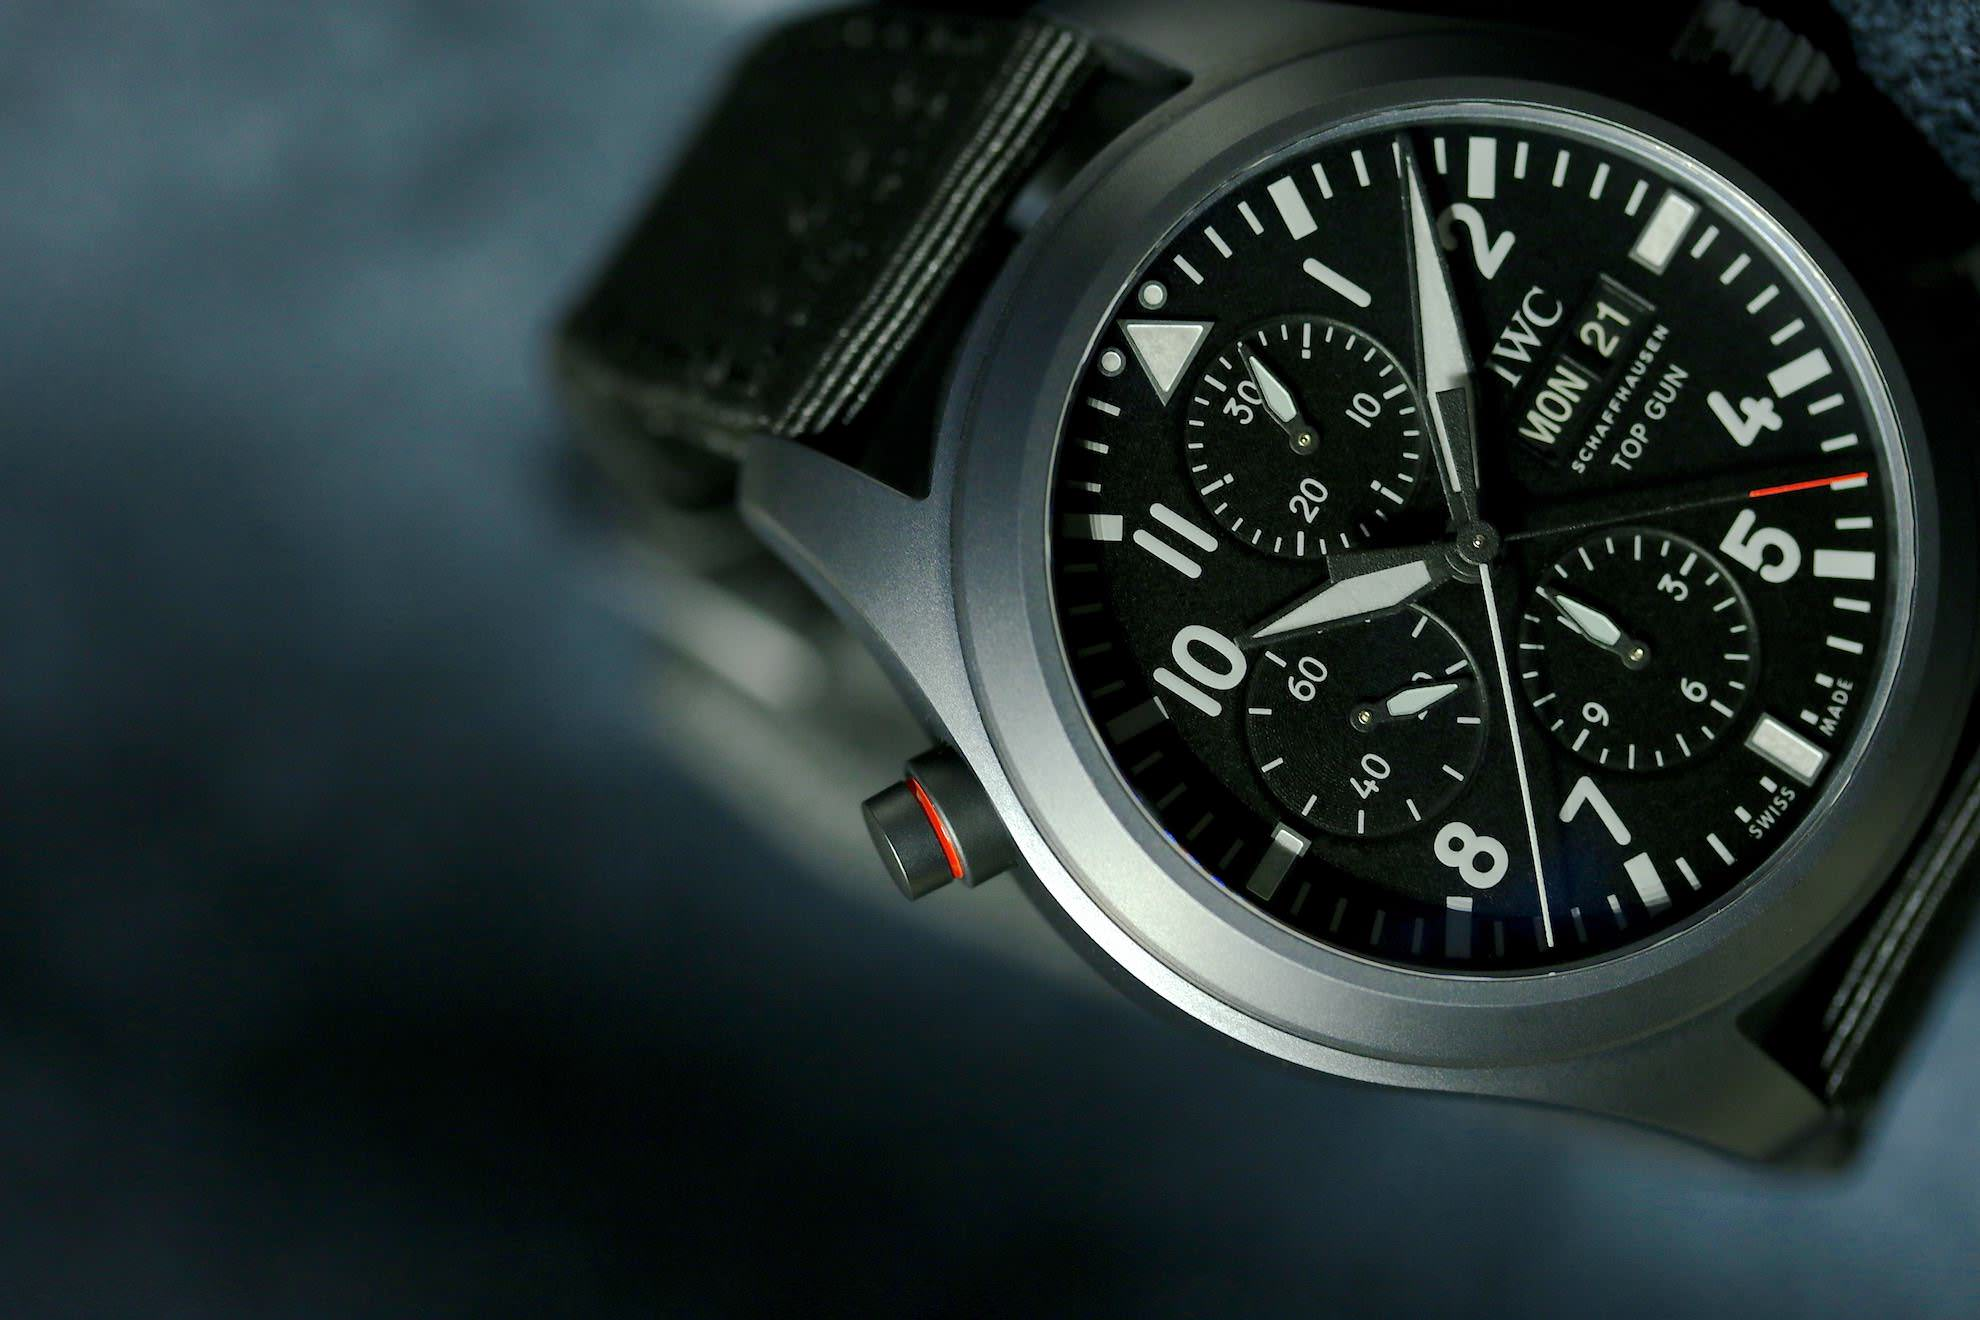 IWC_Pilots_Watch_Double_Chronograph_Top_Gun_Ceratanium_3